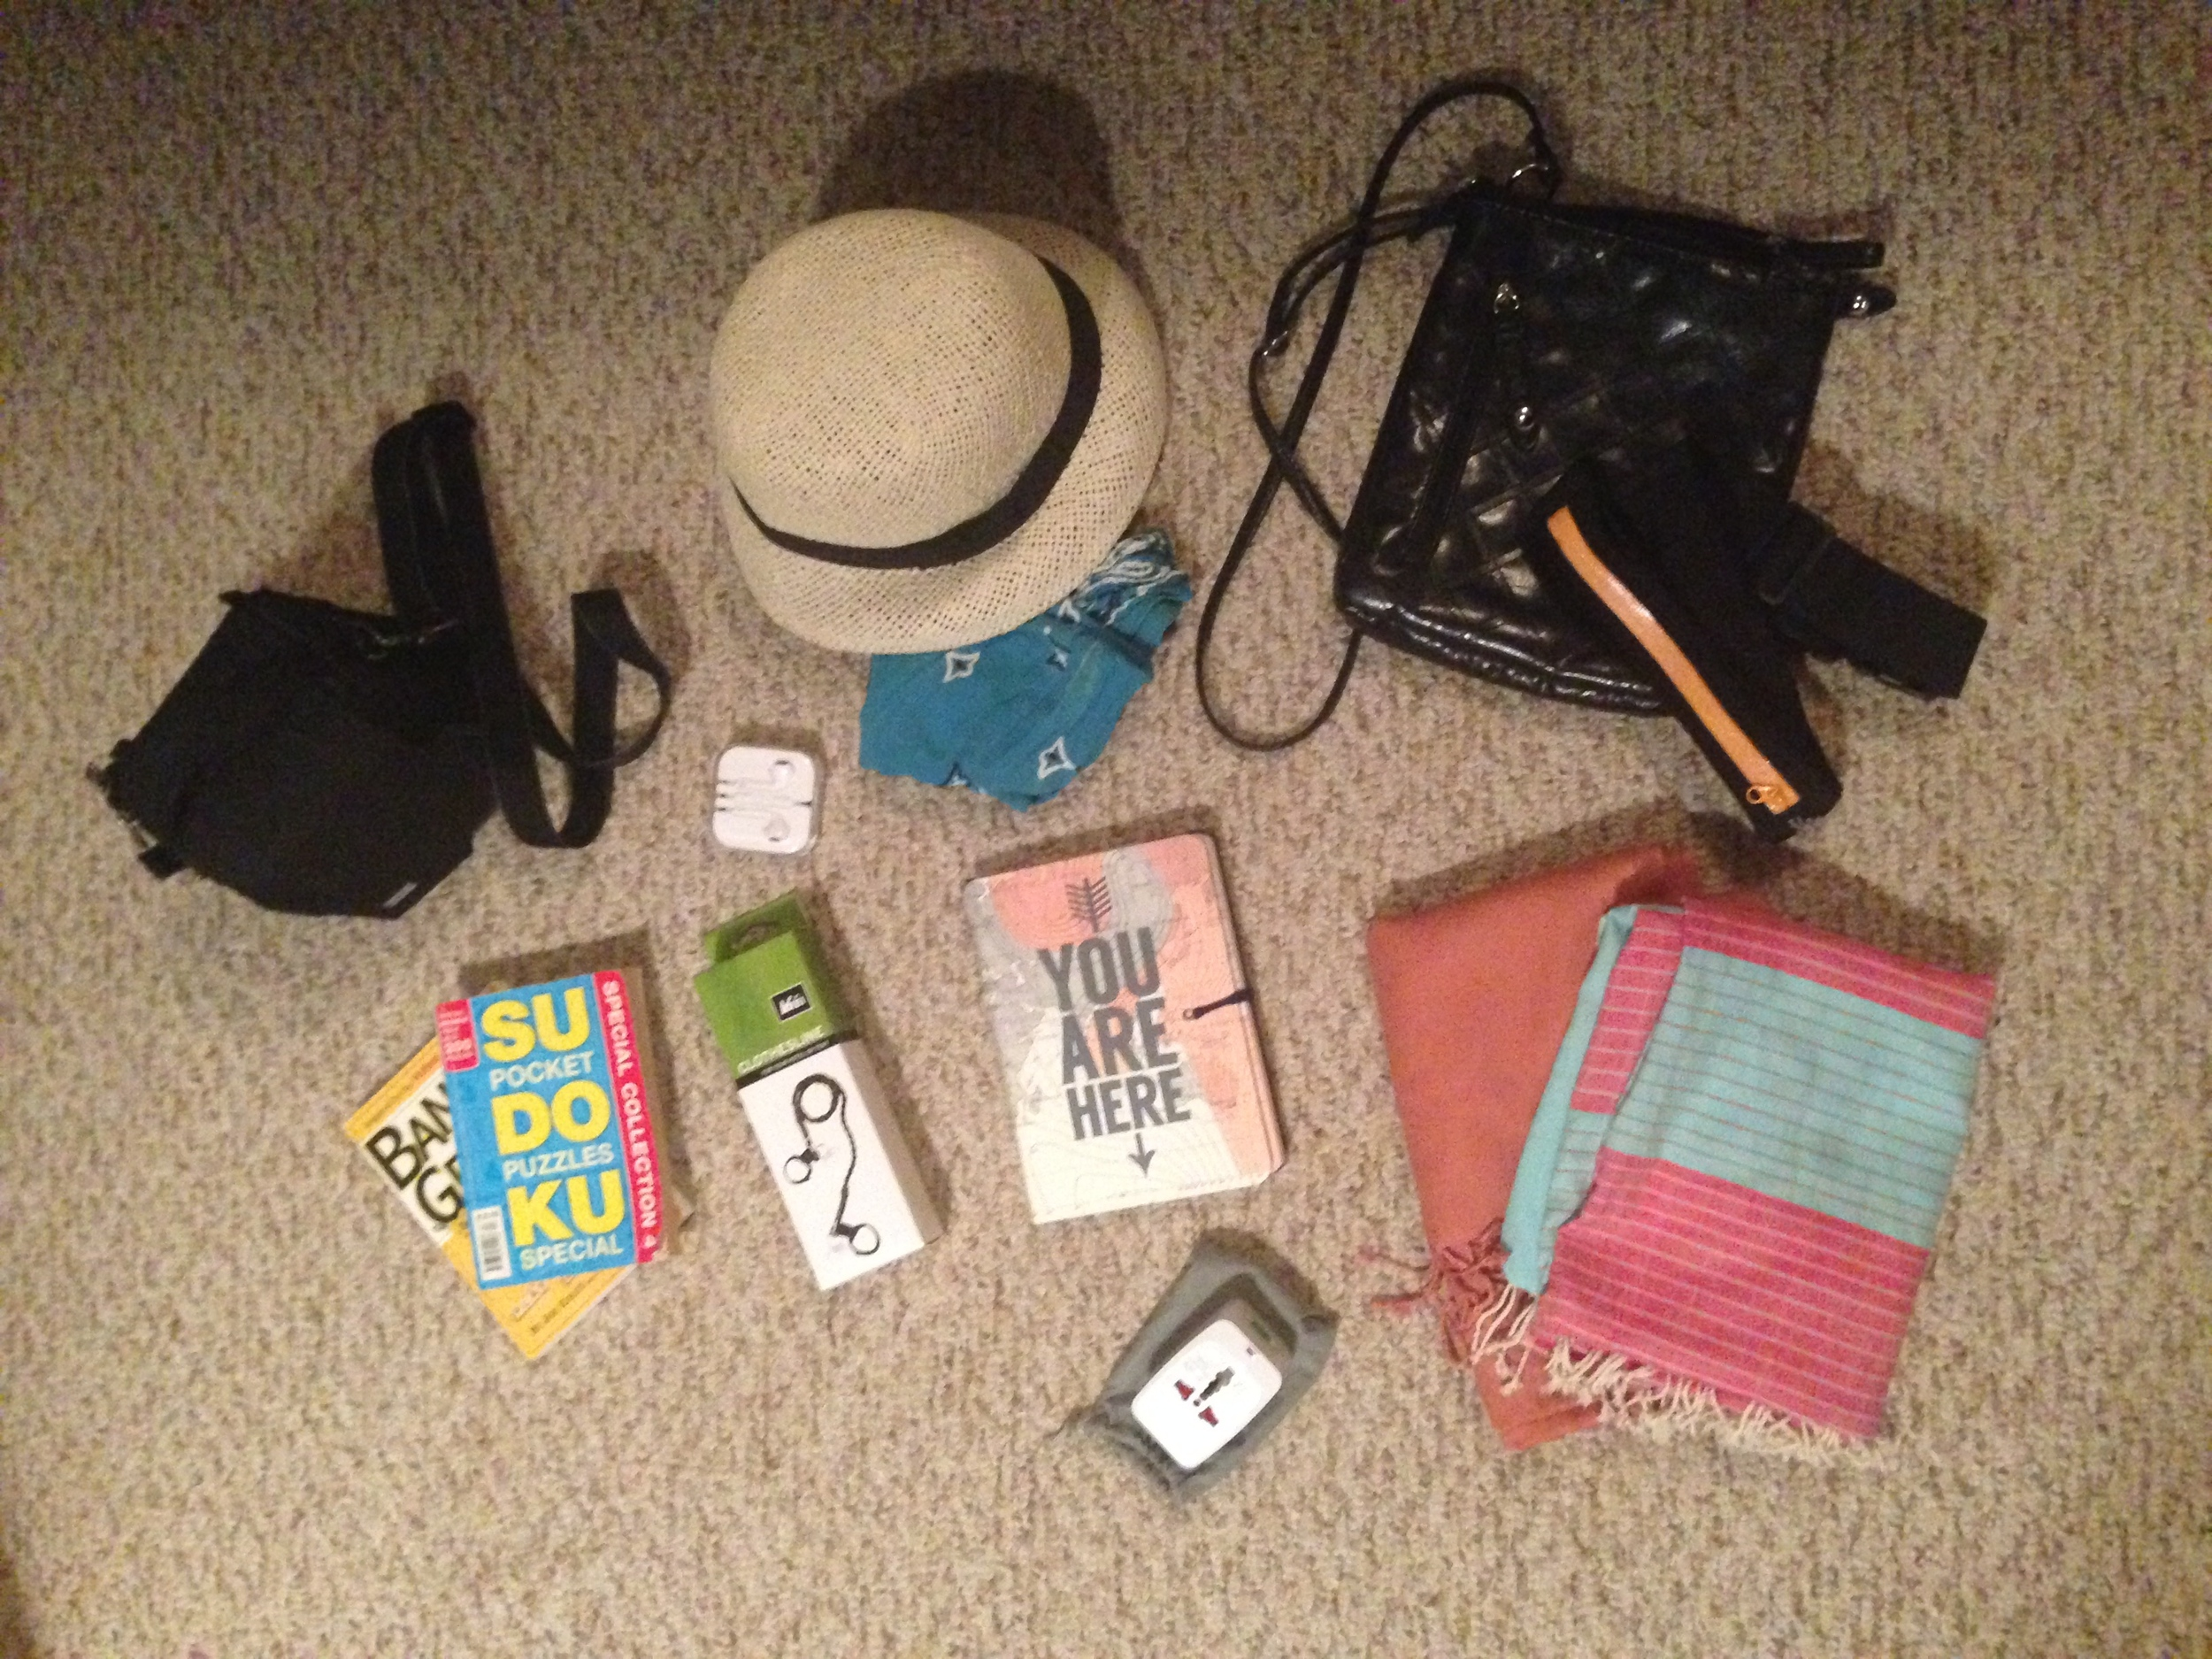 Left to right, top to bottom: Camera in bag (clipped to Keith's backpack during train rides), earbuds, straw hat and bandana, travel purse and money clip (for days I didn't want to wear purse), activity books (only brought one and never used), REI clothing line, travel journal, universal adapter, two scarves. Not pictured: bathing suit I bought in Budapest, red moccasins I wore during train rides or shorter walking days, REI travel bag with bathroom items.